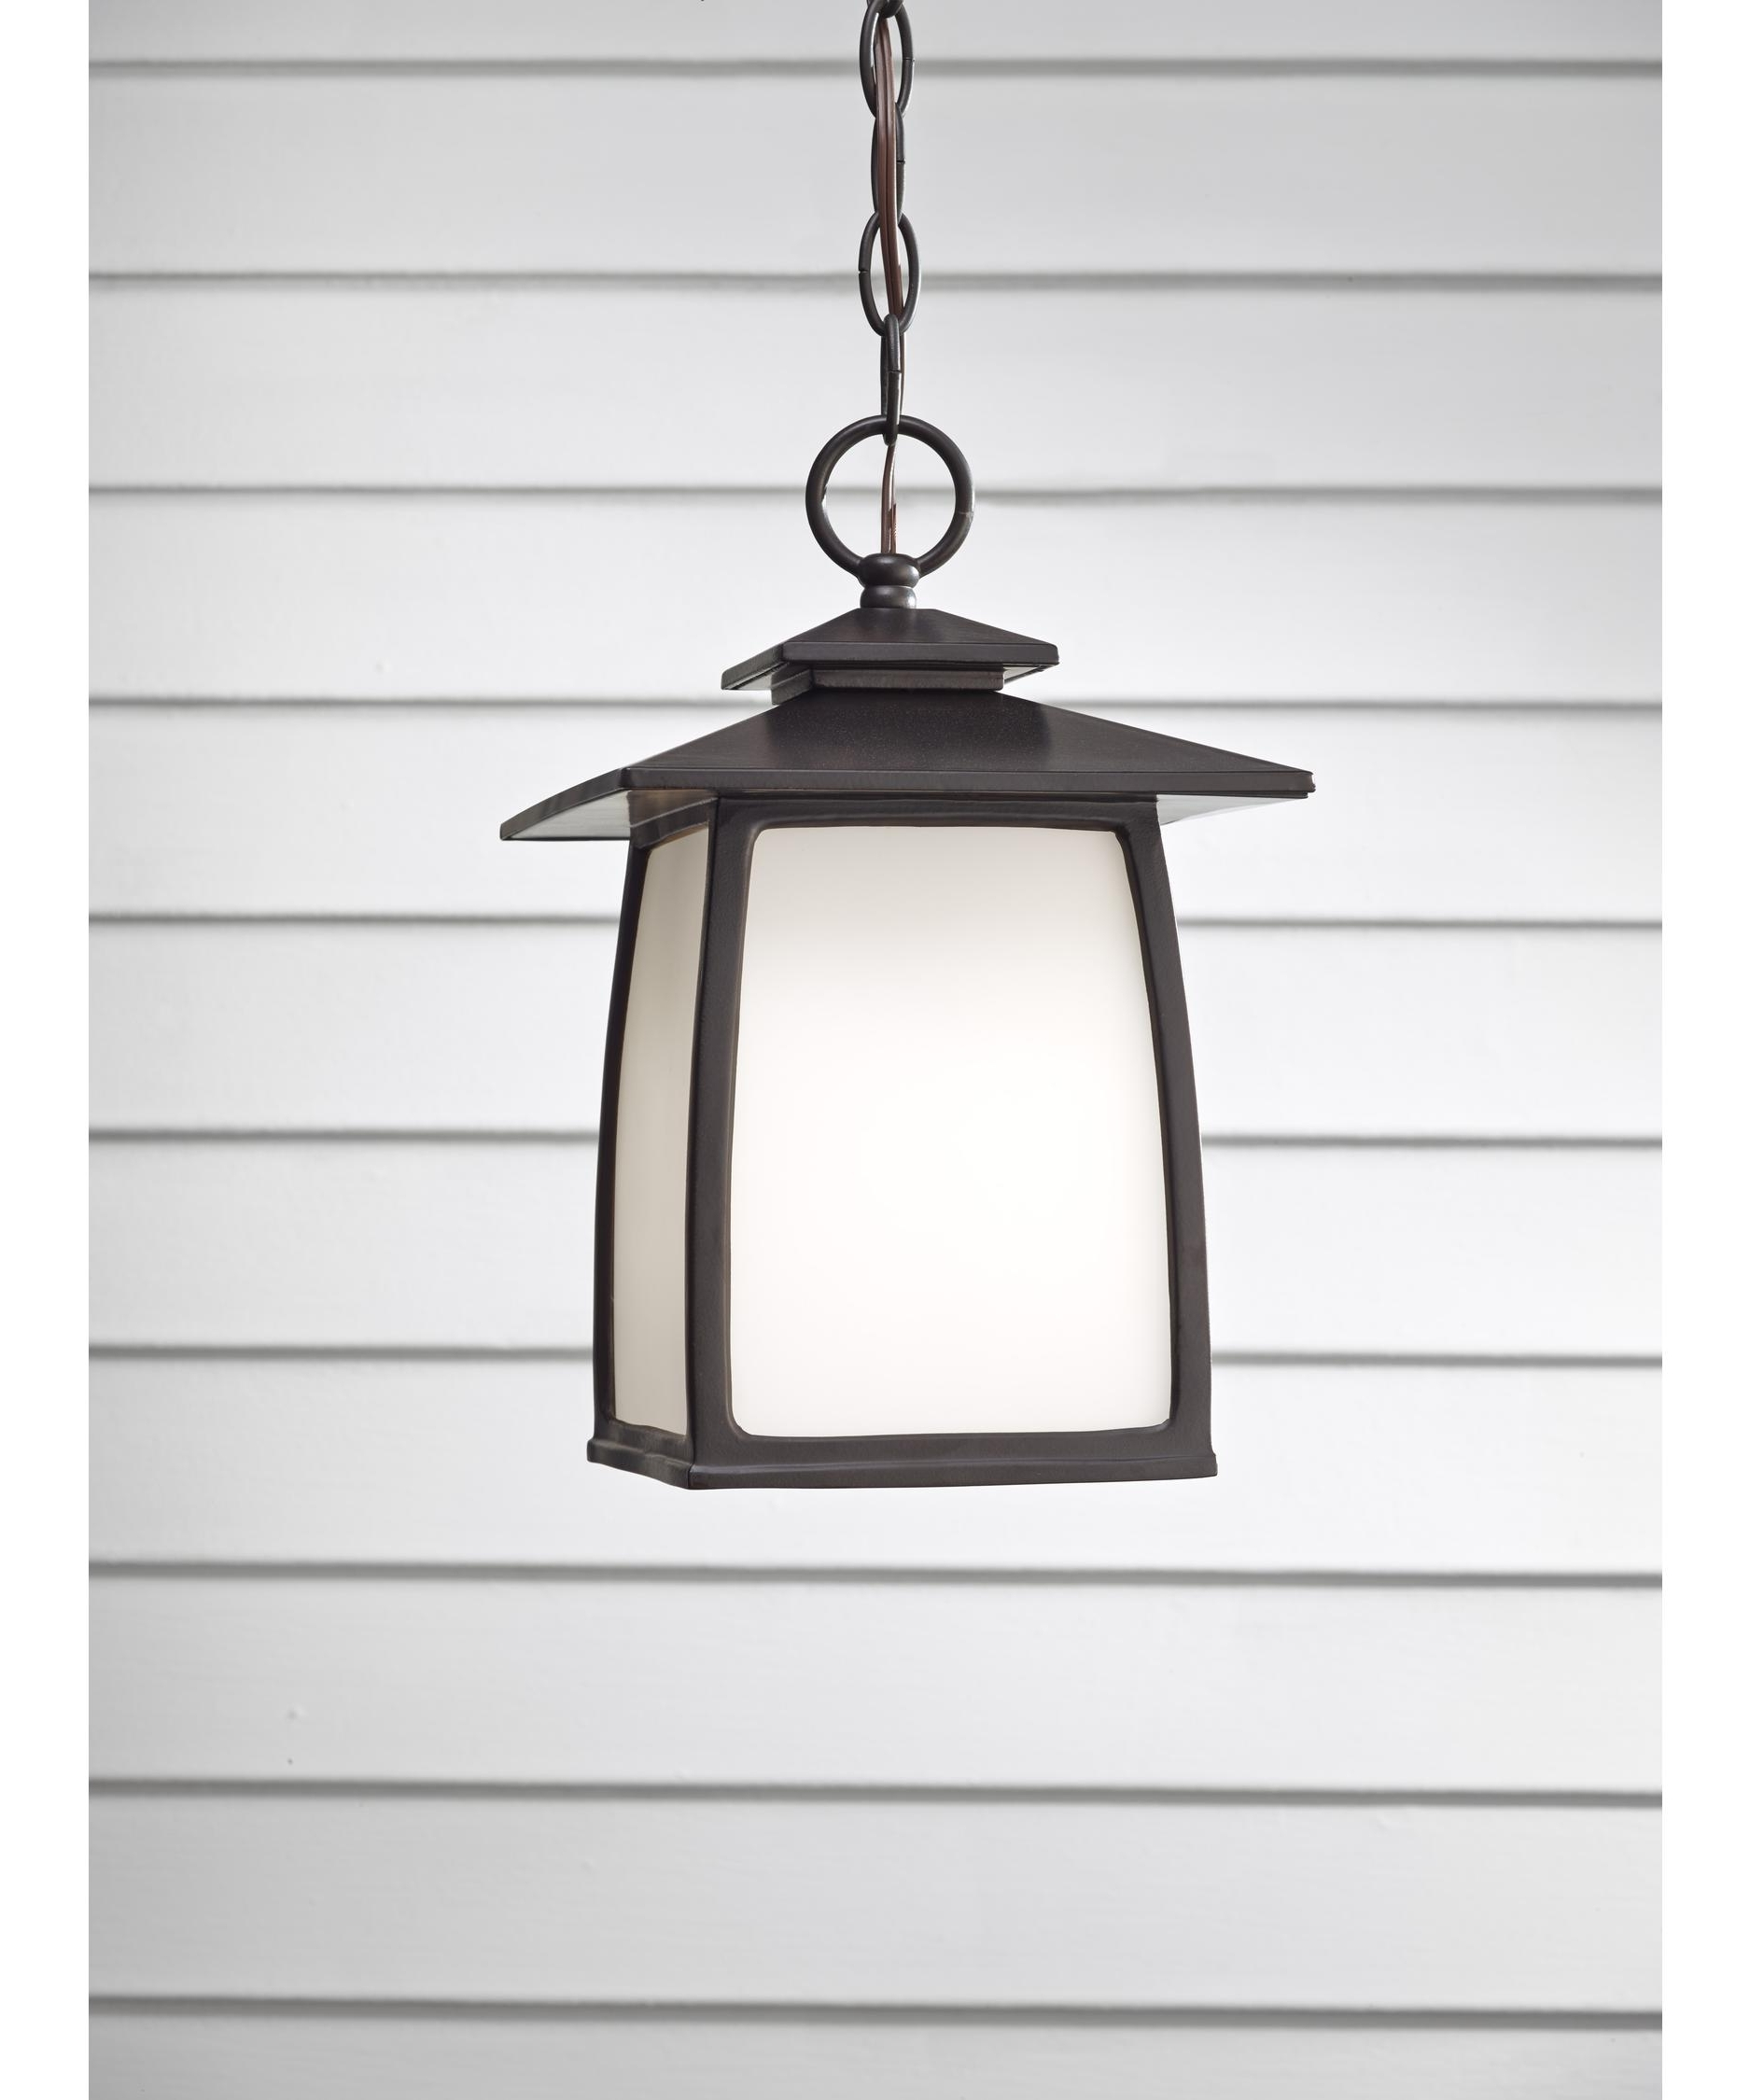 2019 Murray Feiss Ol8511 Wright House 8 Inch Wide 1 Light Outdoor Hanging In Outdoor Hanging Orb Lights (Gallery 19 of 20)